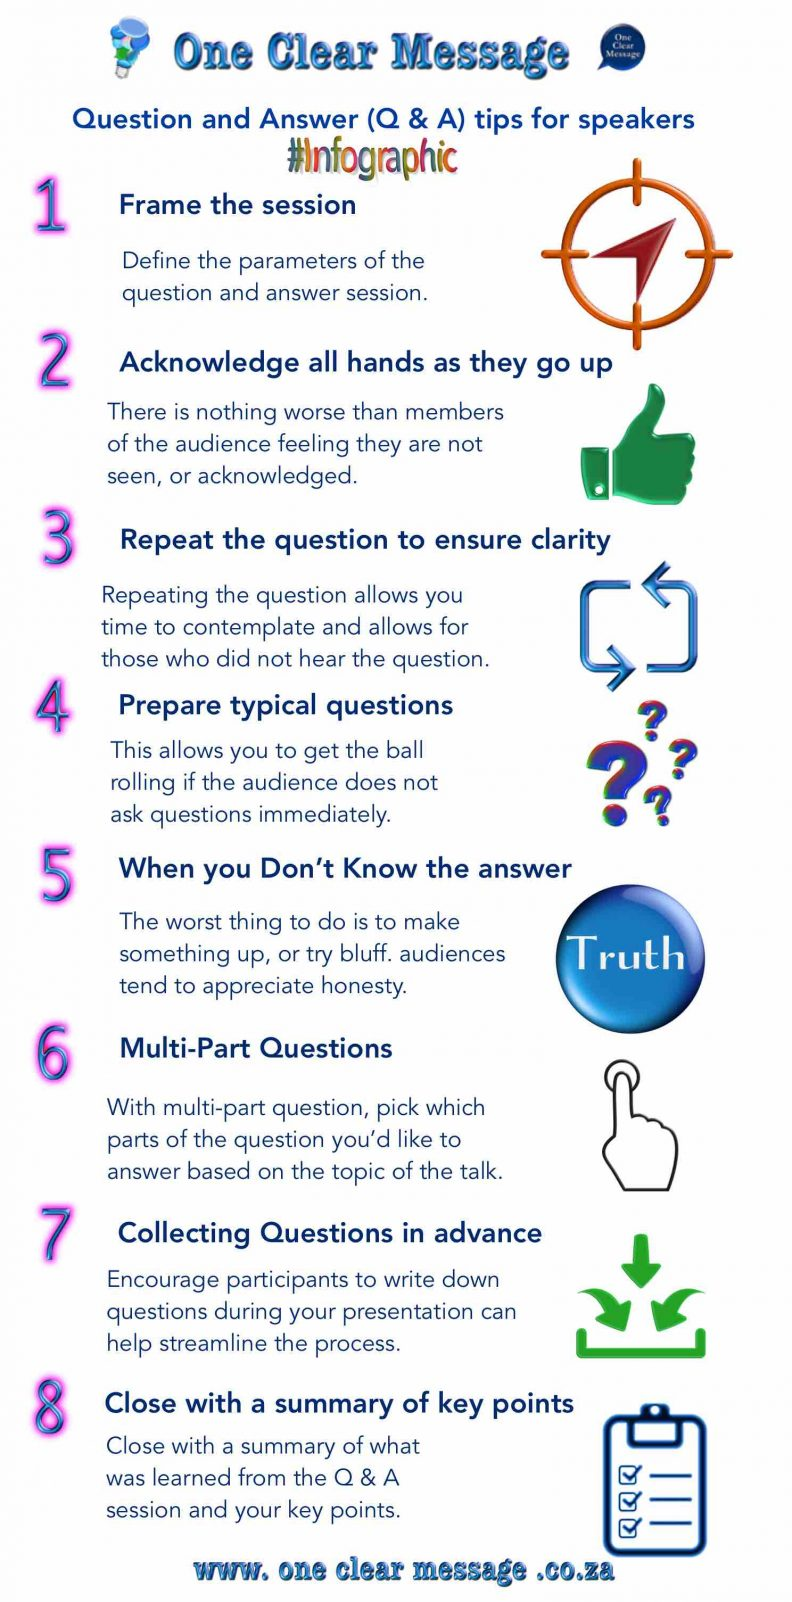 Question and Answer (Q & A) tips for speakers Infographic